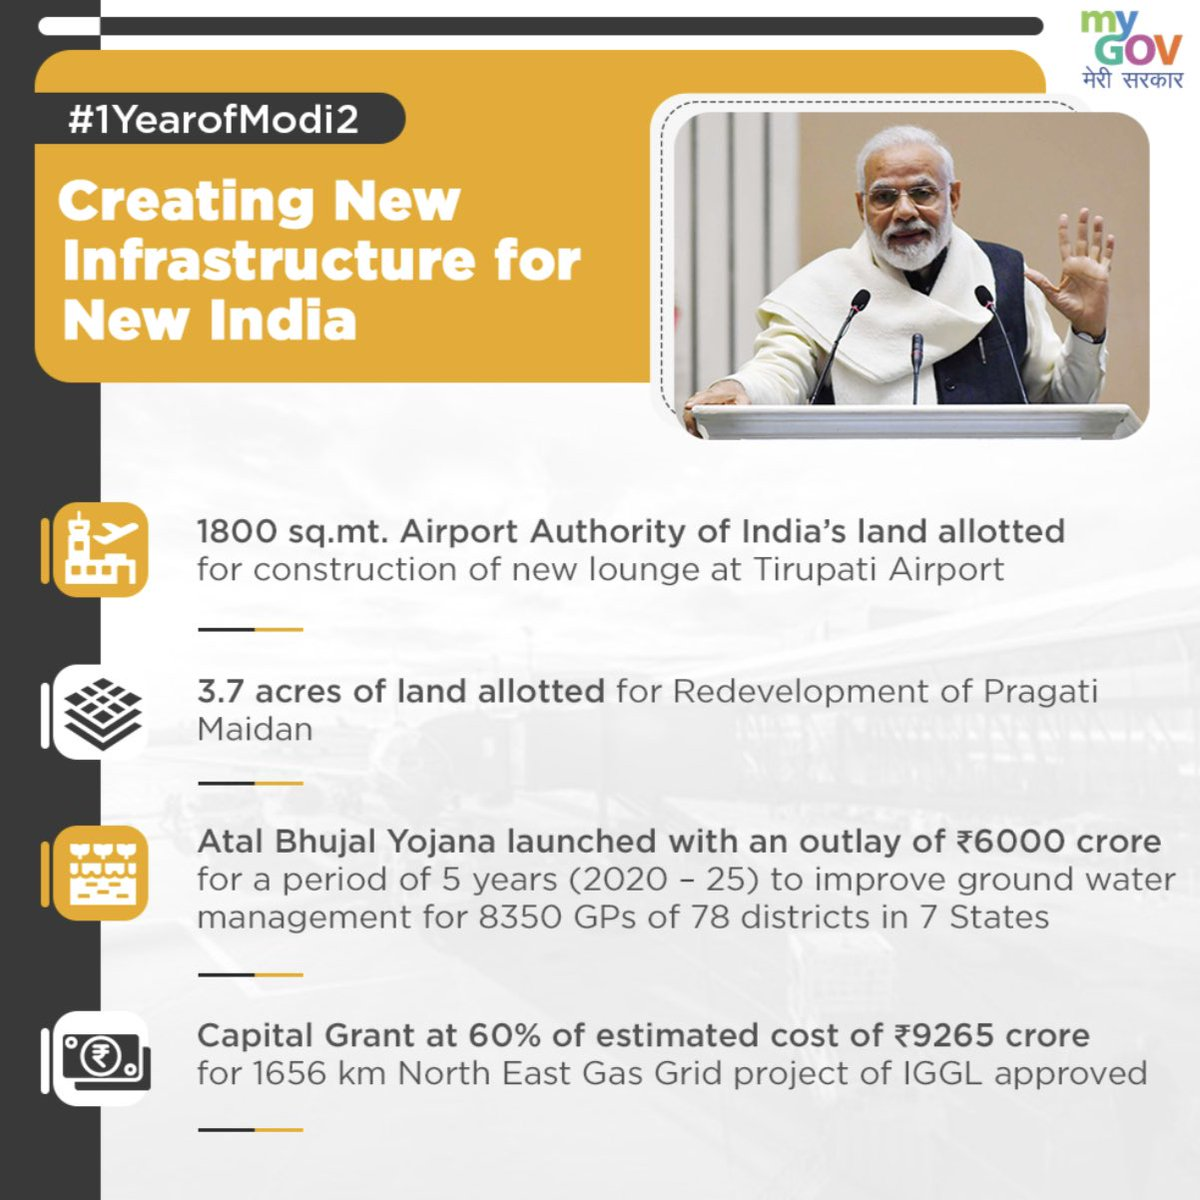 Within #1YearOfModi2, the @narendramodi government has laid foundations for creating new infrastructure for a #NewIndia. From land to @AAI_Official for lounge at Tirupati Airport to Atal Bhujal Yojana, our nation will see a transformative change in coming years. https://t.co/6CoWVd6RD3